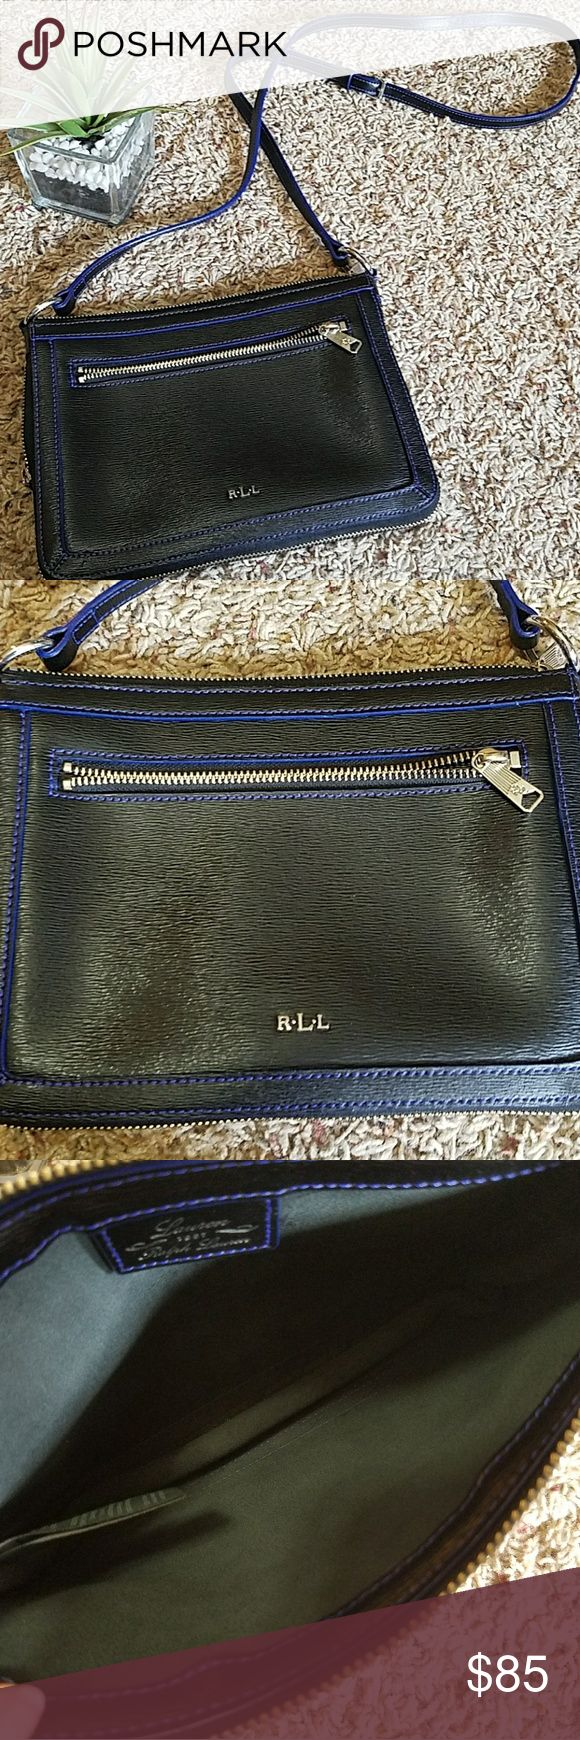 Ralph Lauren shoulder bag Beautiful black leather with dark bluish purple detailed stitching shoulder bag.  Outside gusseted zipper for expansion. Front zippered pocket, very roomy.  Soft Gray suede interior. Strap as shown is currently 23 inches, can adjust.  EXCELLENT condition, never used. Ralph Lauren RRL Bags Shoulder Bags